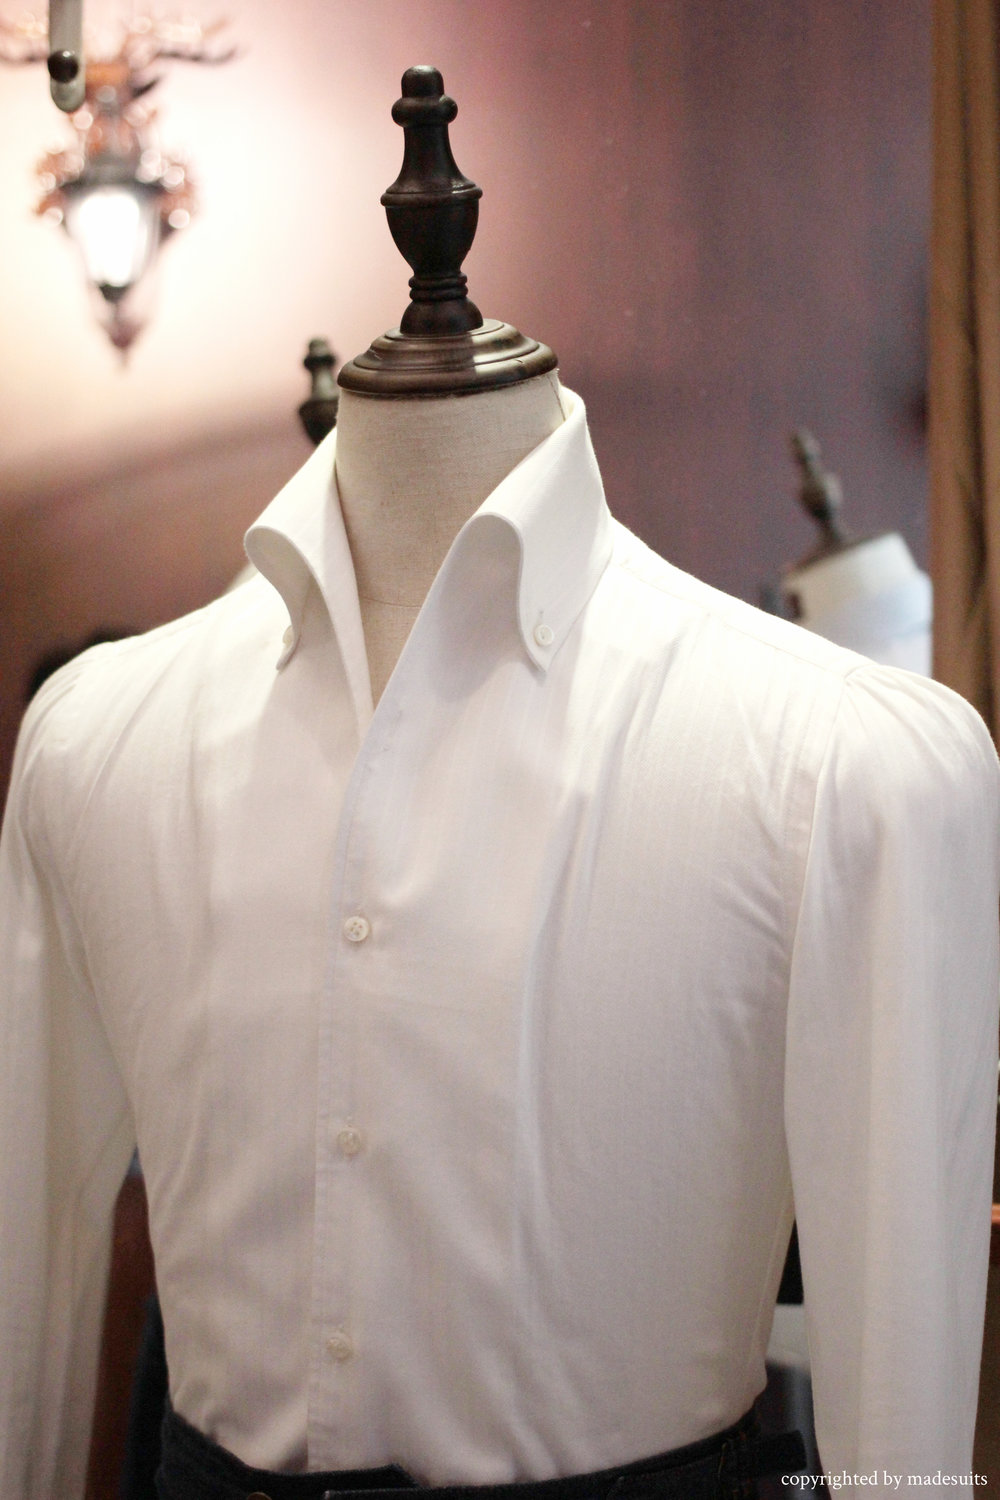 one piece collar | Tailored Shirts Singapore | Custom shirts | Formal Shirts | Made Suits